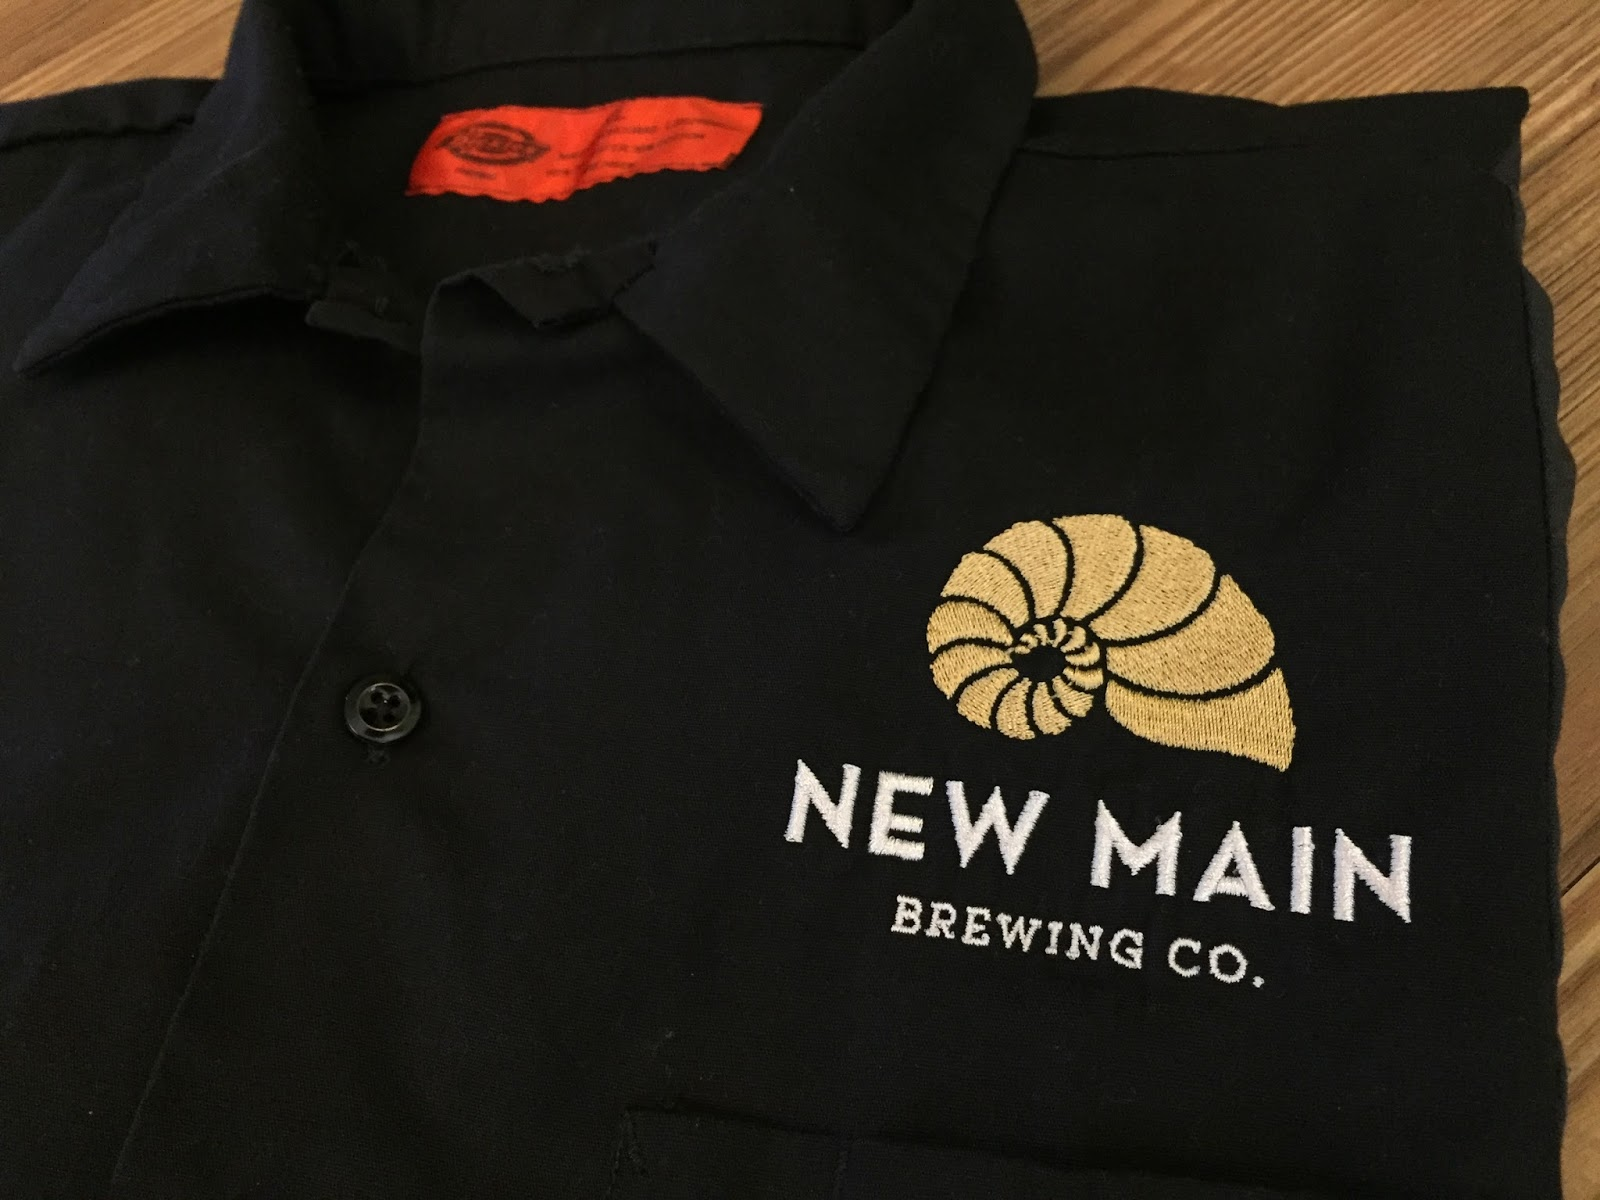 The New Main 2017 Growler Wiring Diagram Dont Forget Brewing Indiegogo Campaign Is Almost Over So Make Sure To Grab Your Limited Edition T Shirts Pint Glasses Growlers